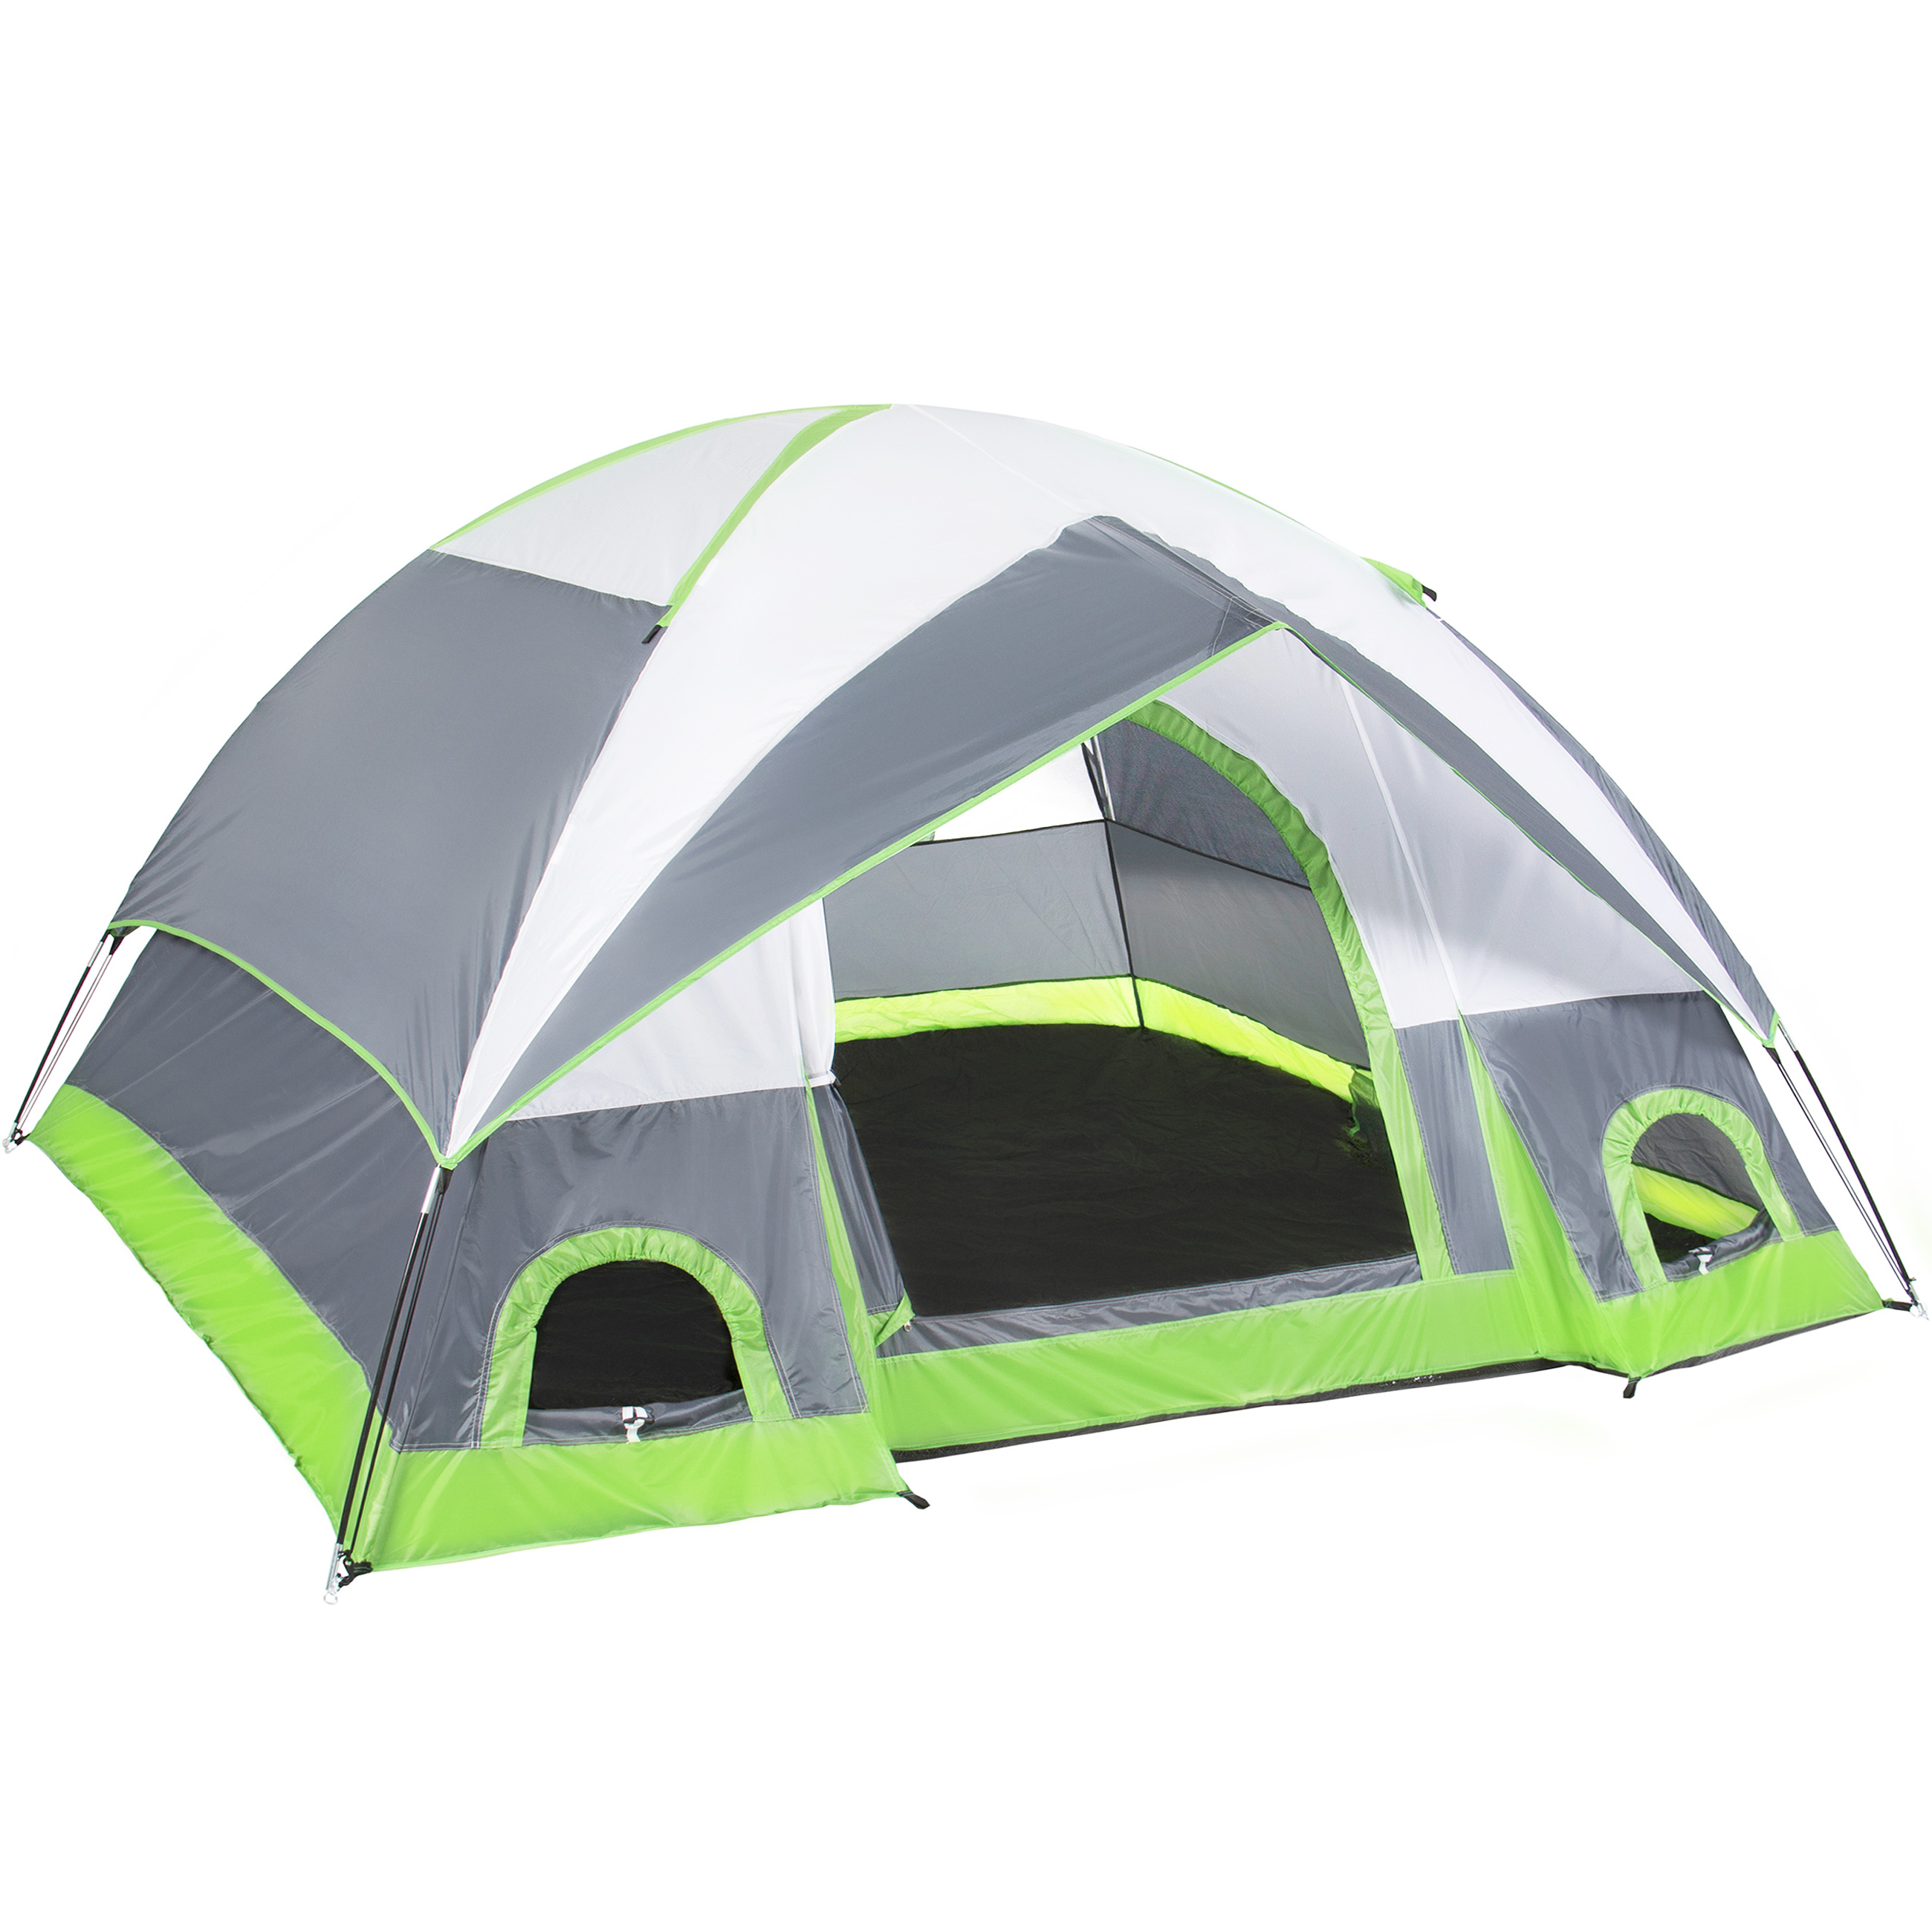 4 Person Camping Tent Family Outdoor Sleeping Dome Water Resistant W  Carry Bag by